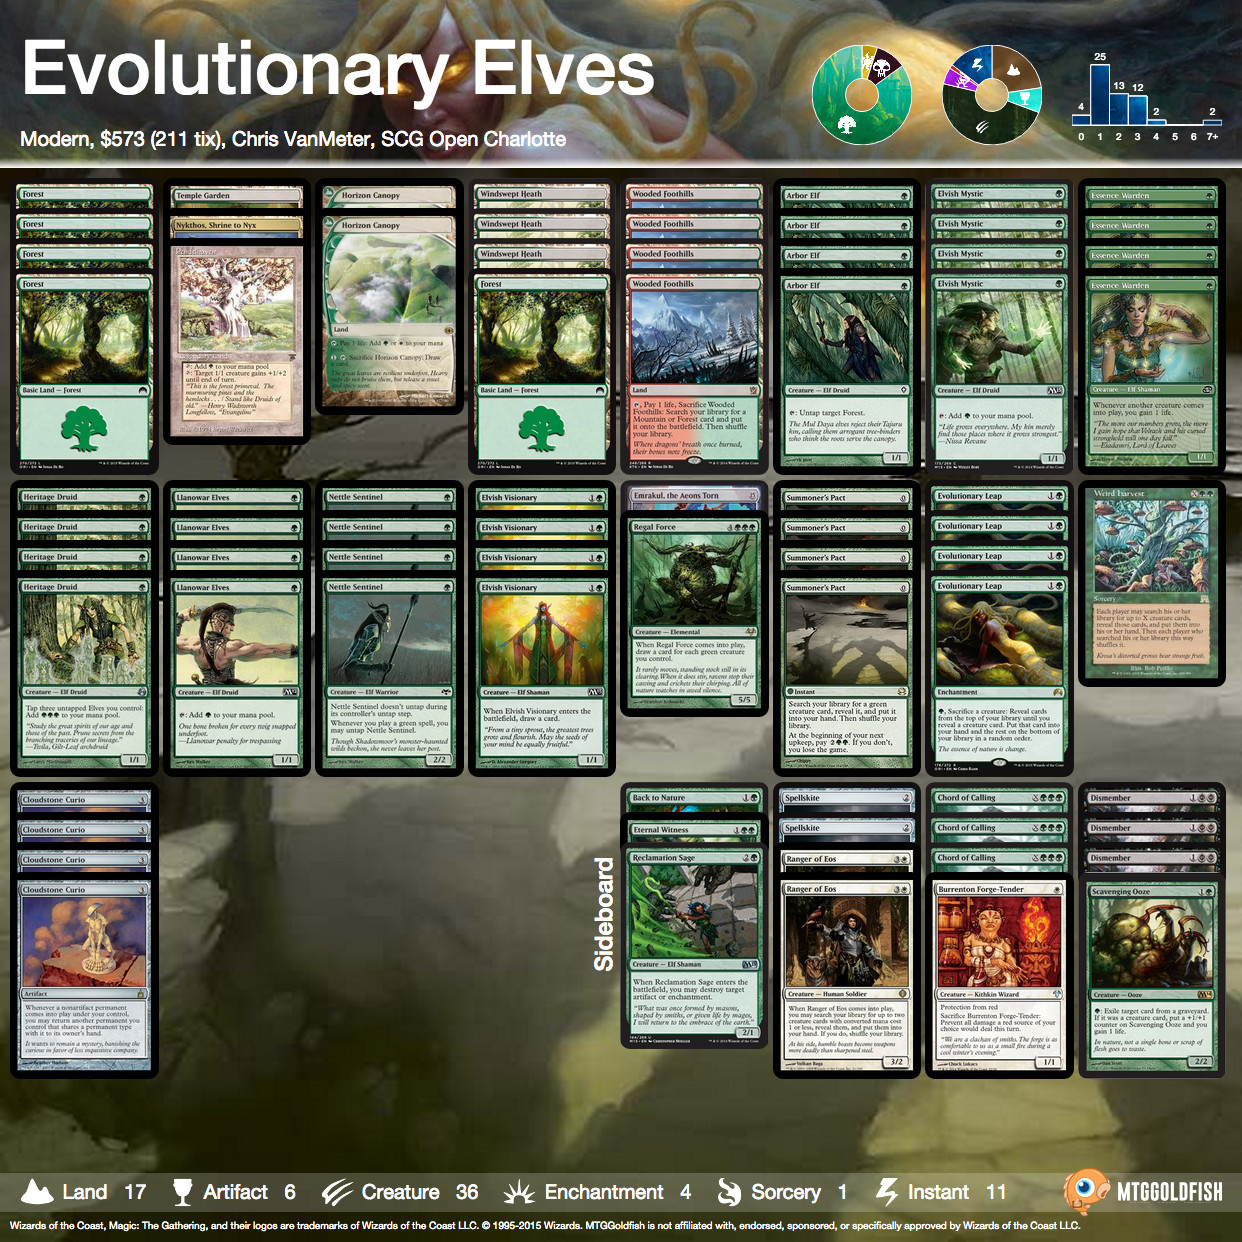 Evolutionary elves